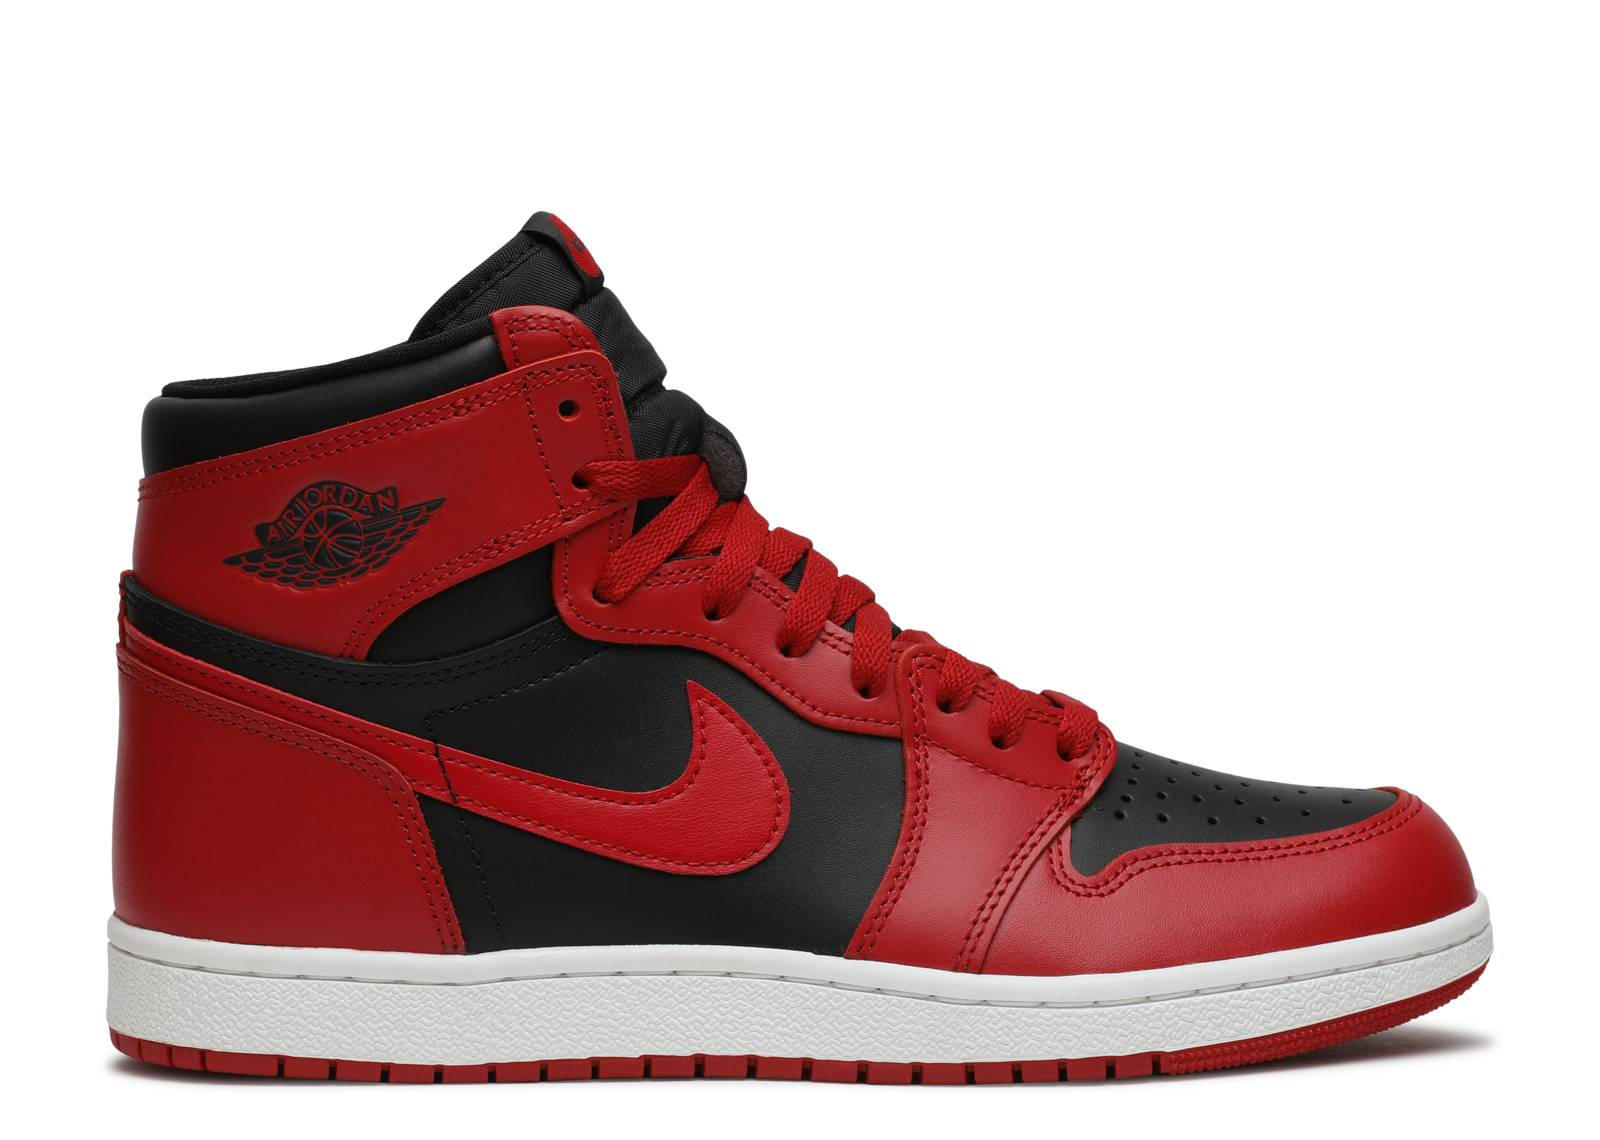 AIR JORDAN 1 RETRO HIGH '85 'VARSITY RED'